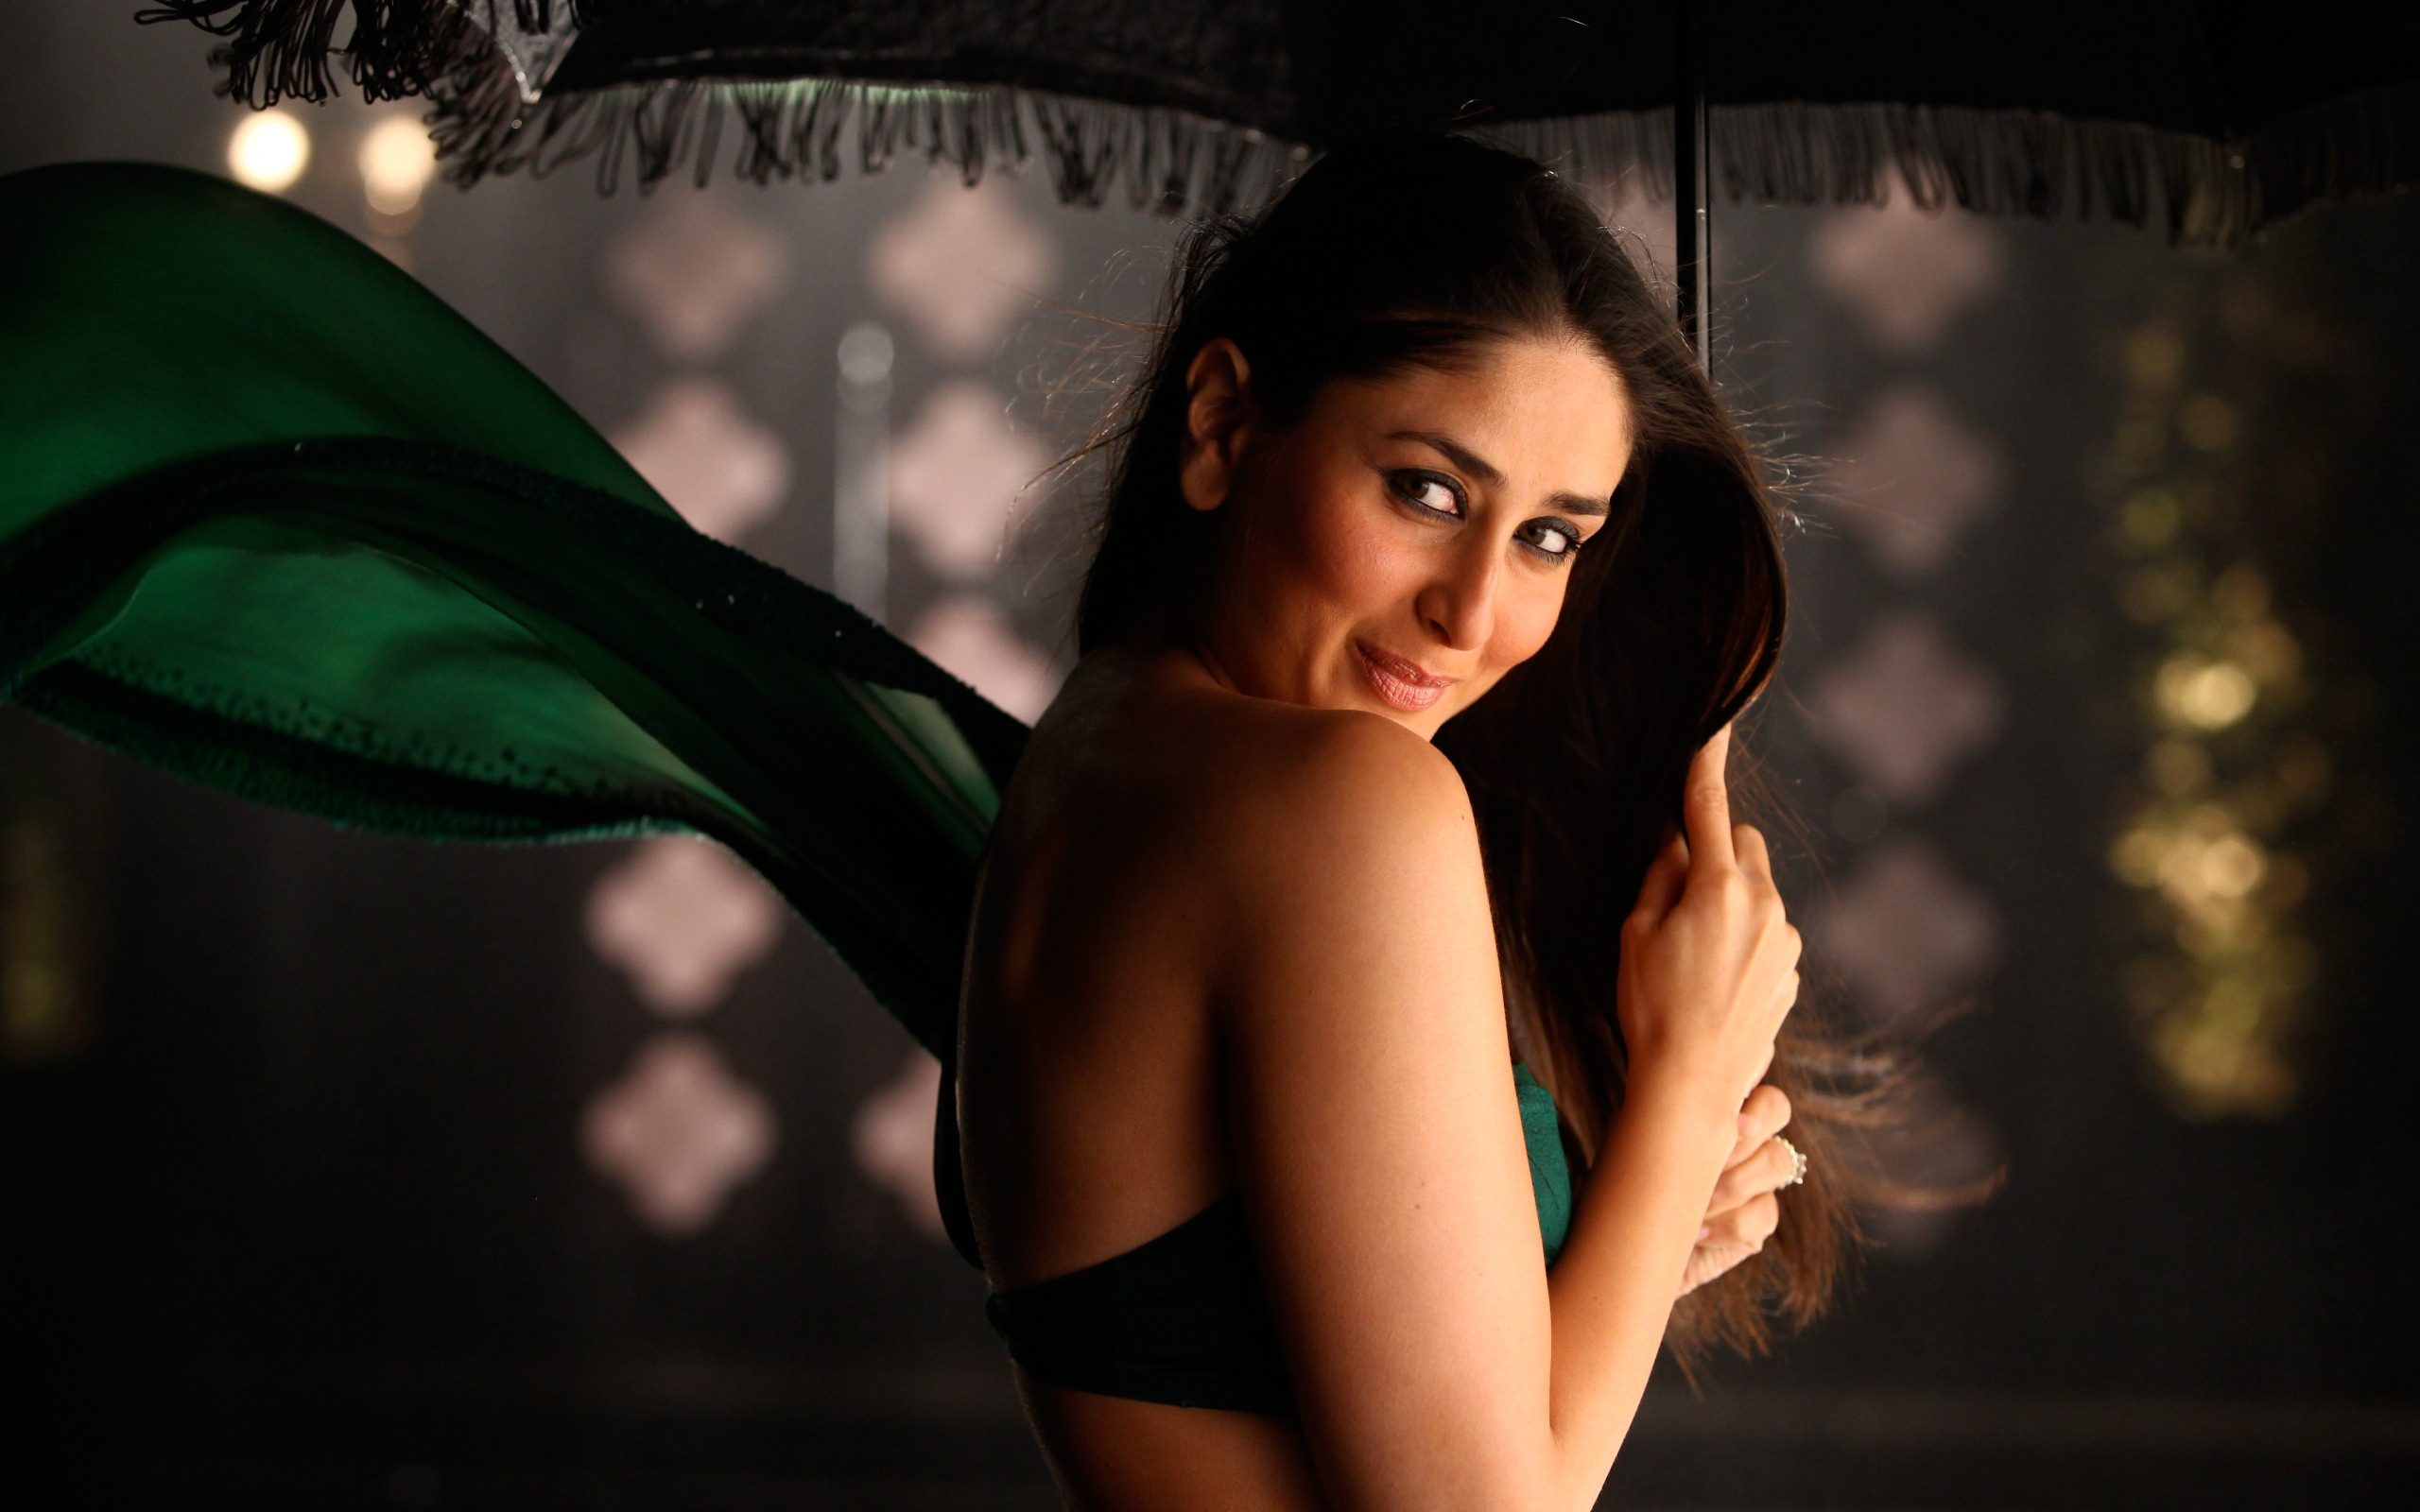 kareena kapoor in bodyguard wallpapers in jpg format for free download